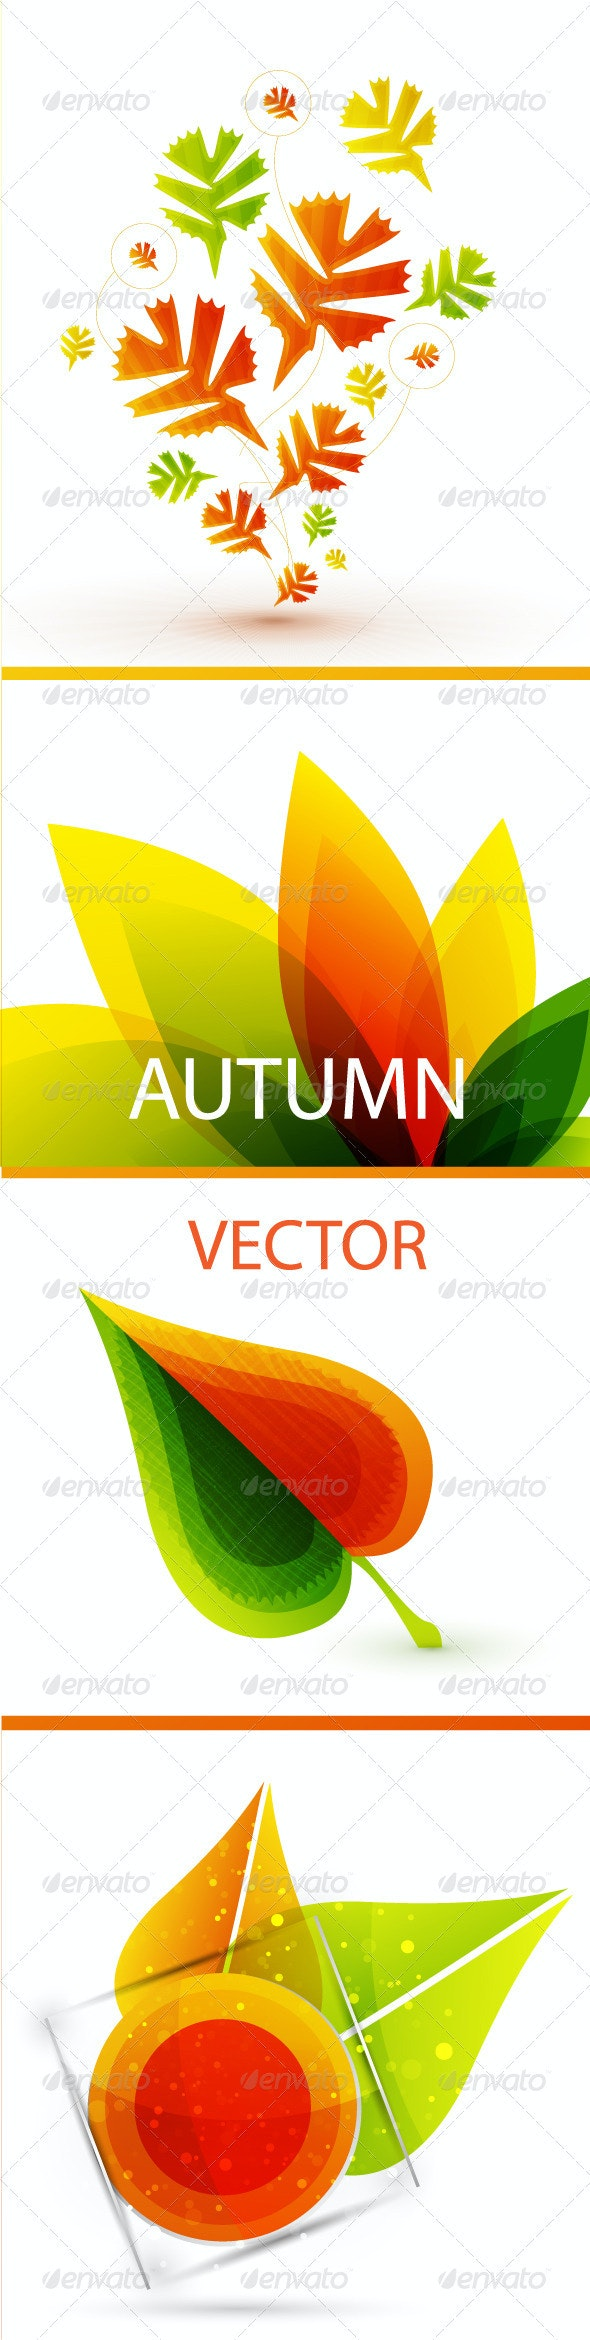 Autumn Leaves Nature Vector Pack - Backgrounds Decorative